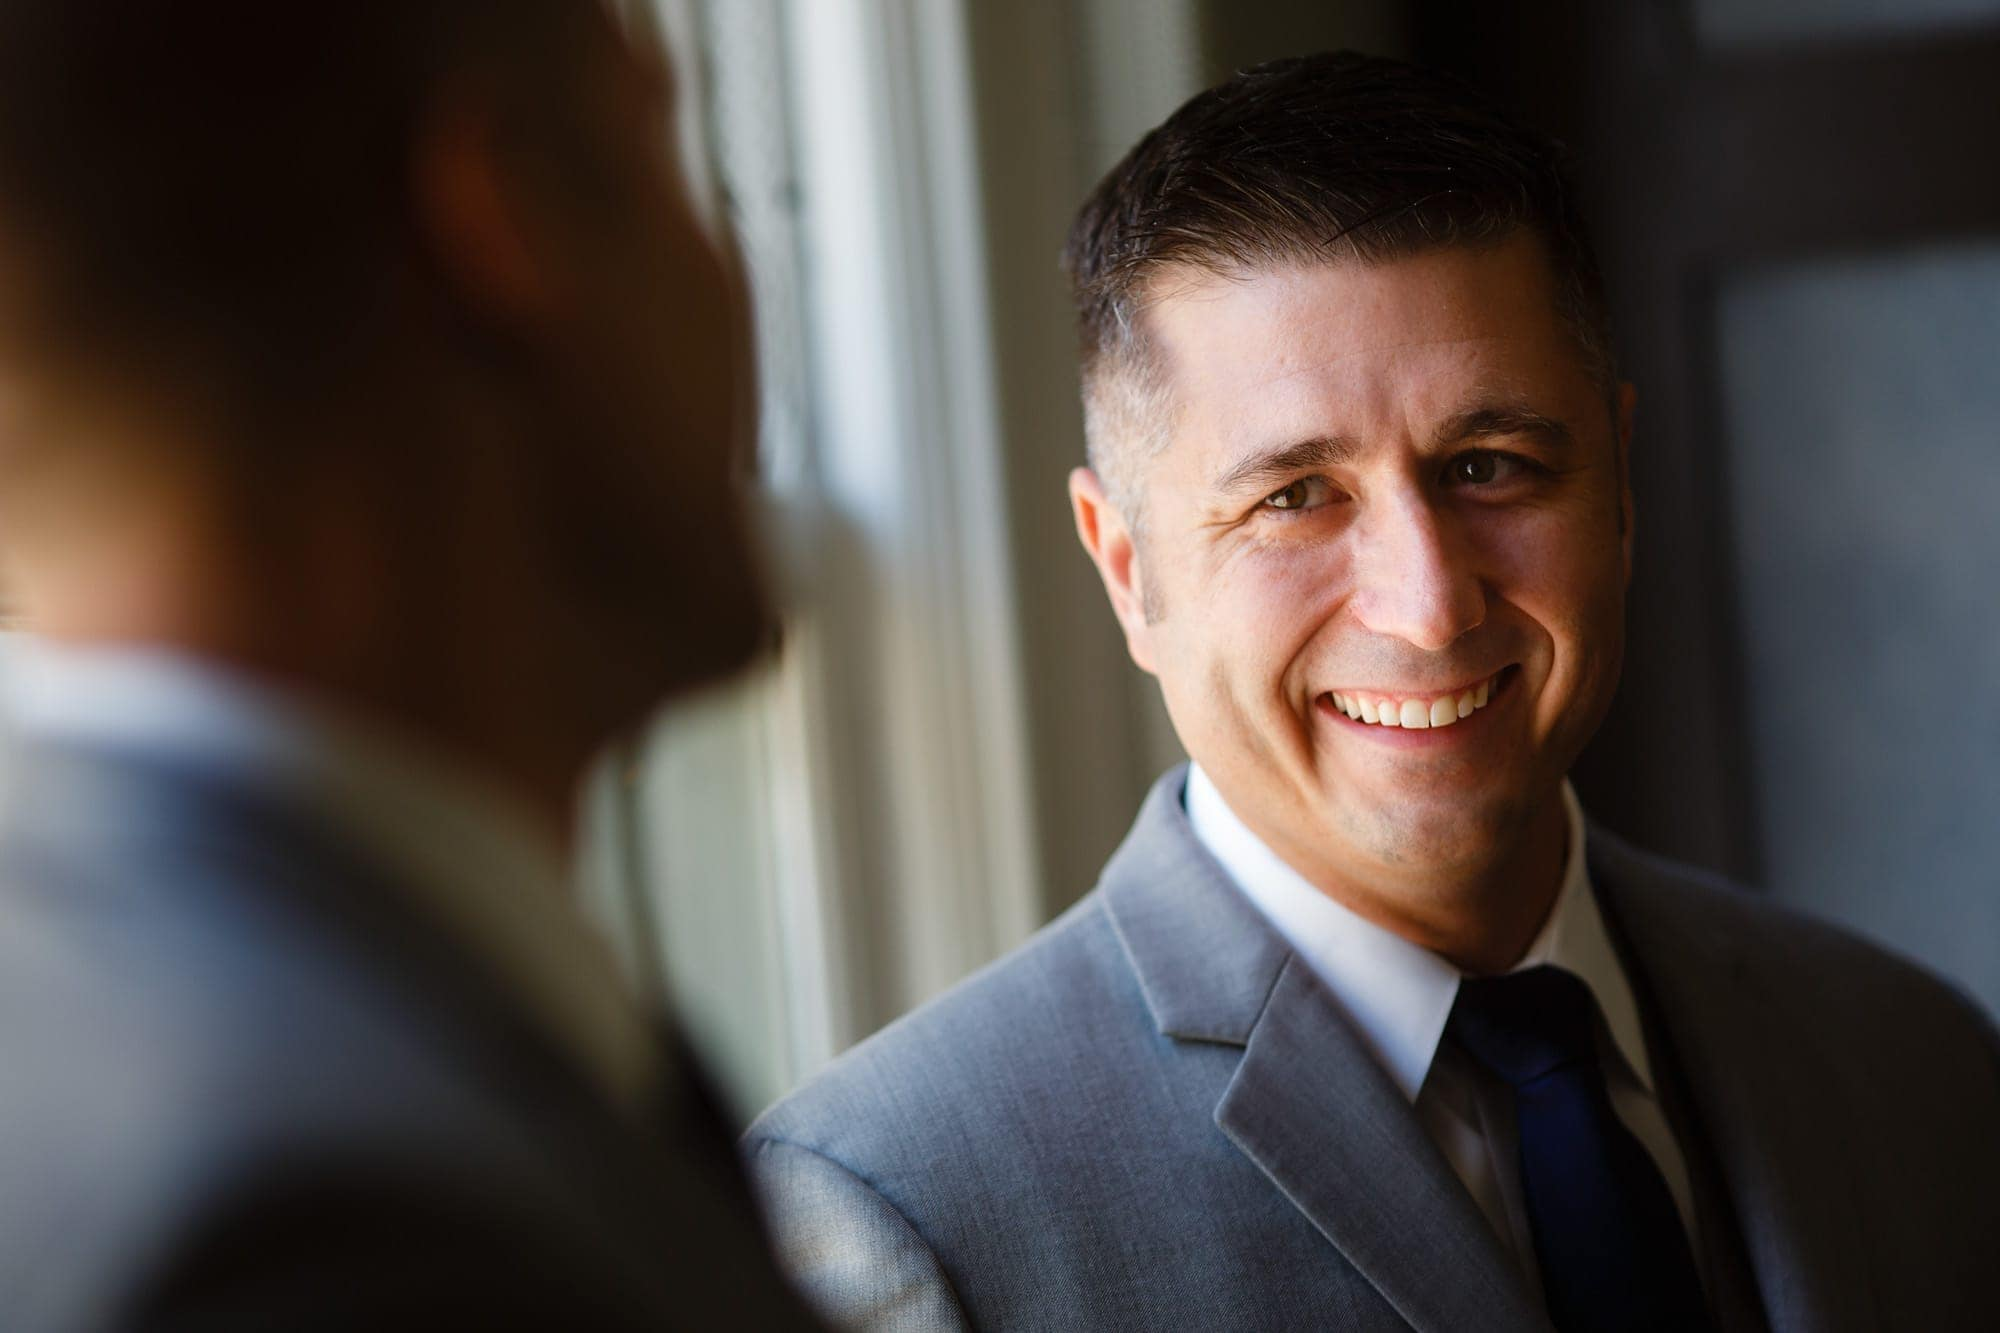 A groom shares a laugh with his groomsmen in Denver at Magnolia Hotel